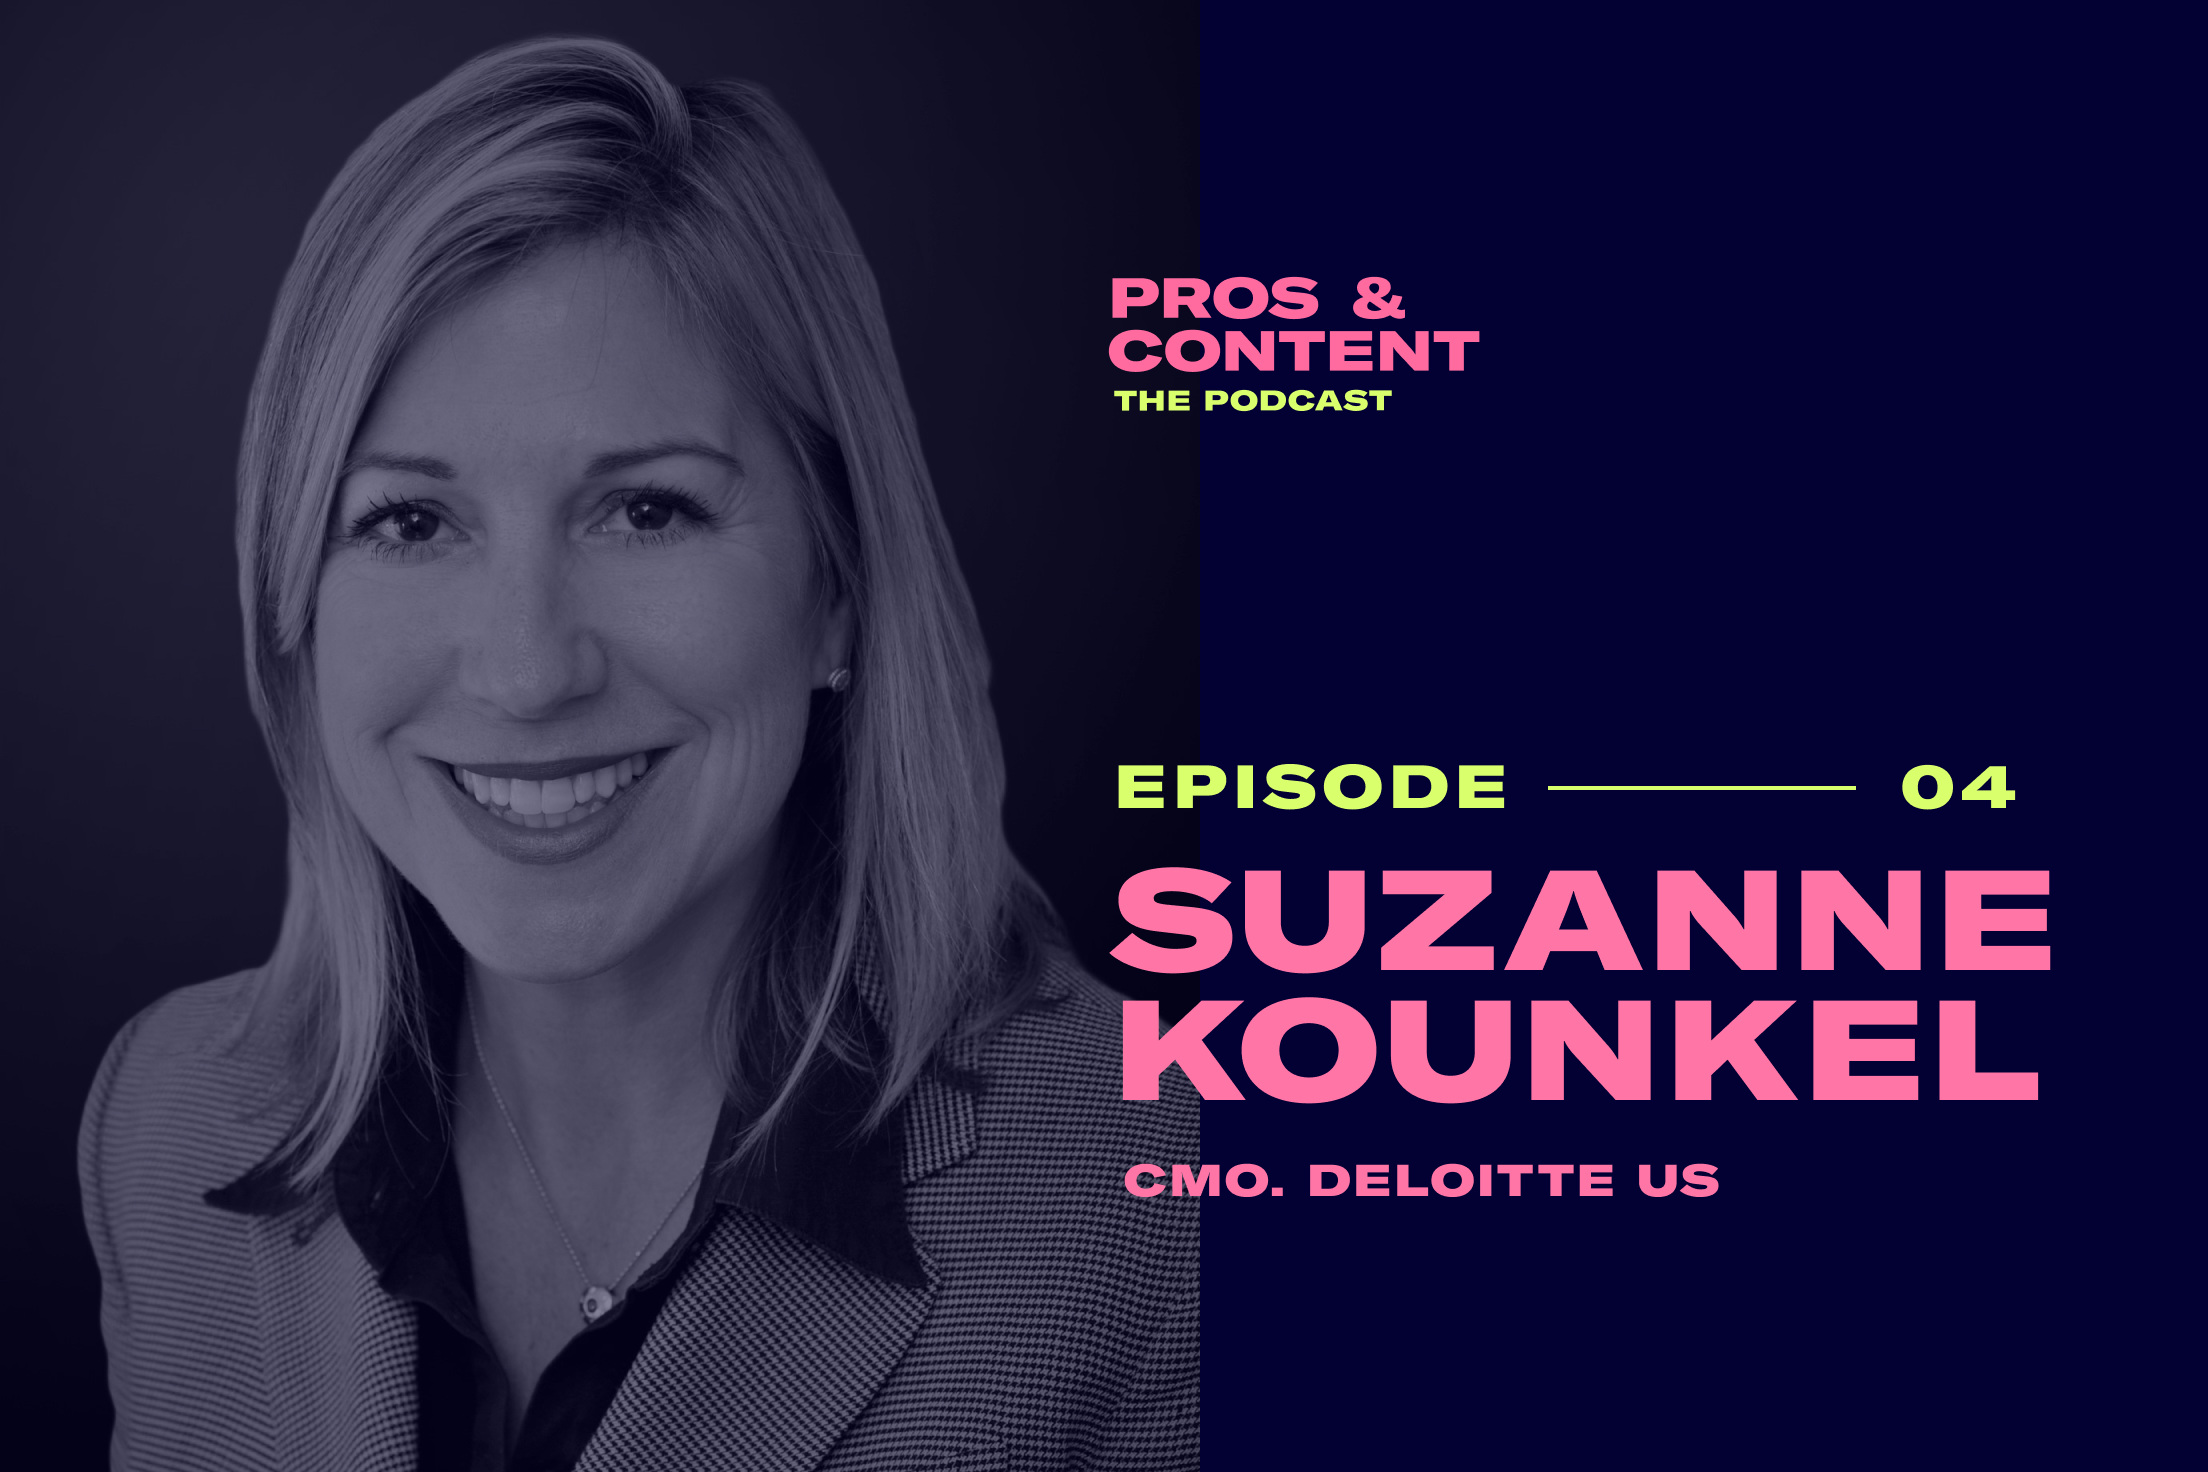 Pros & Content Podcast: Suzanne Kounkel